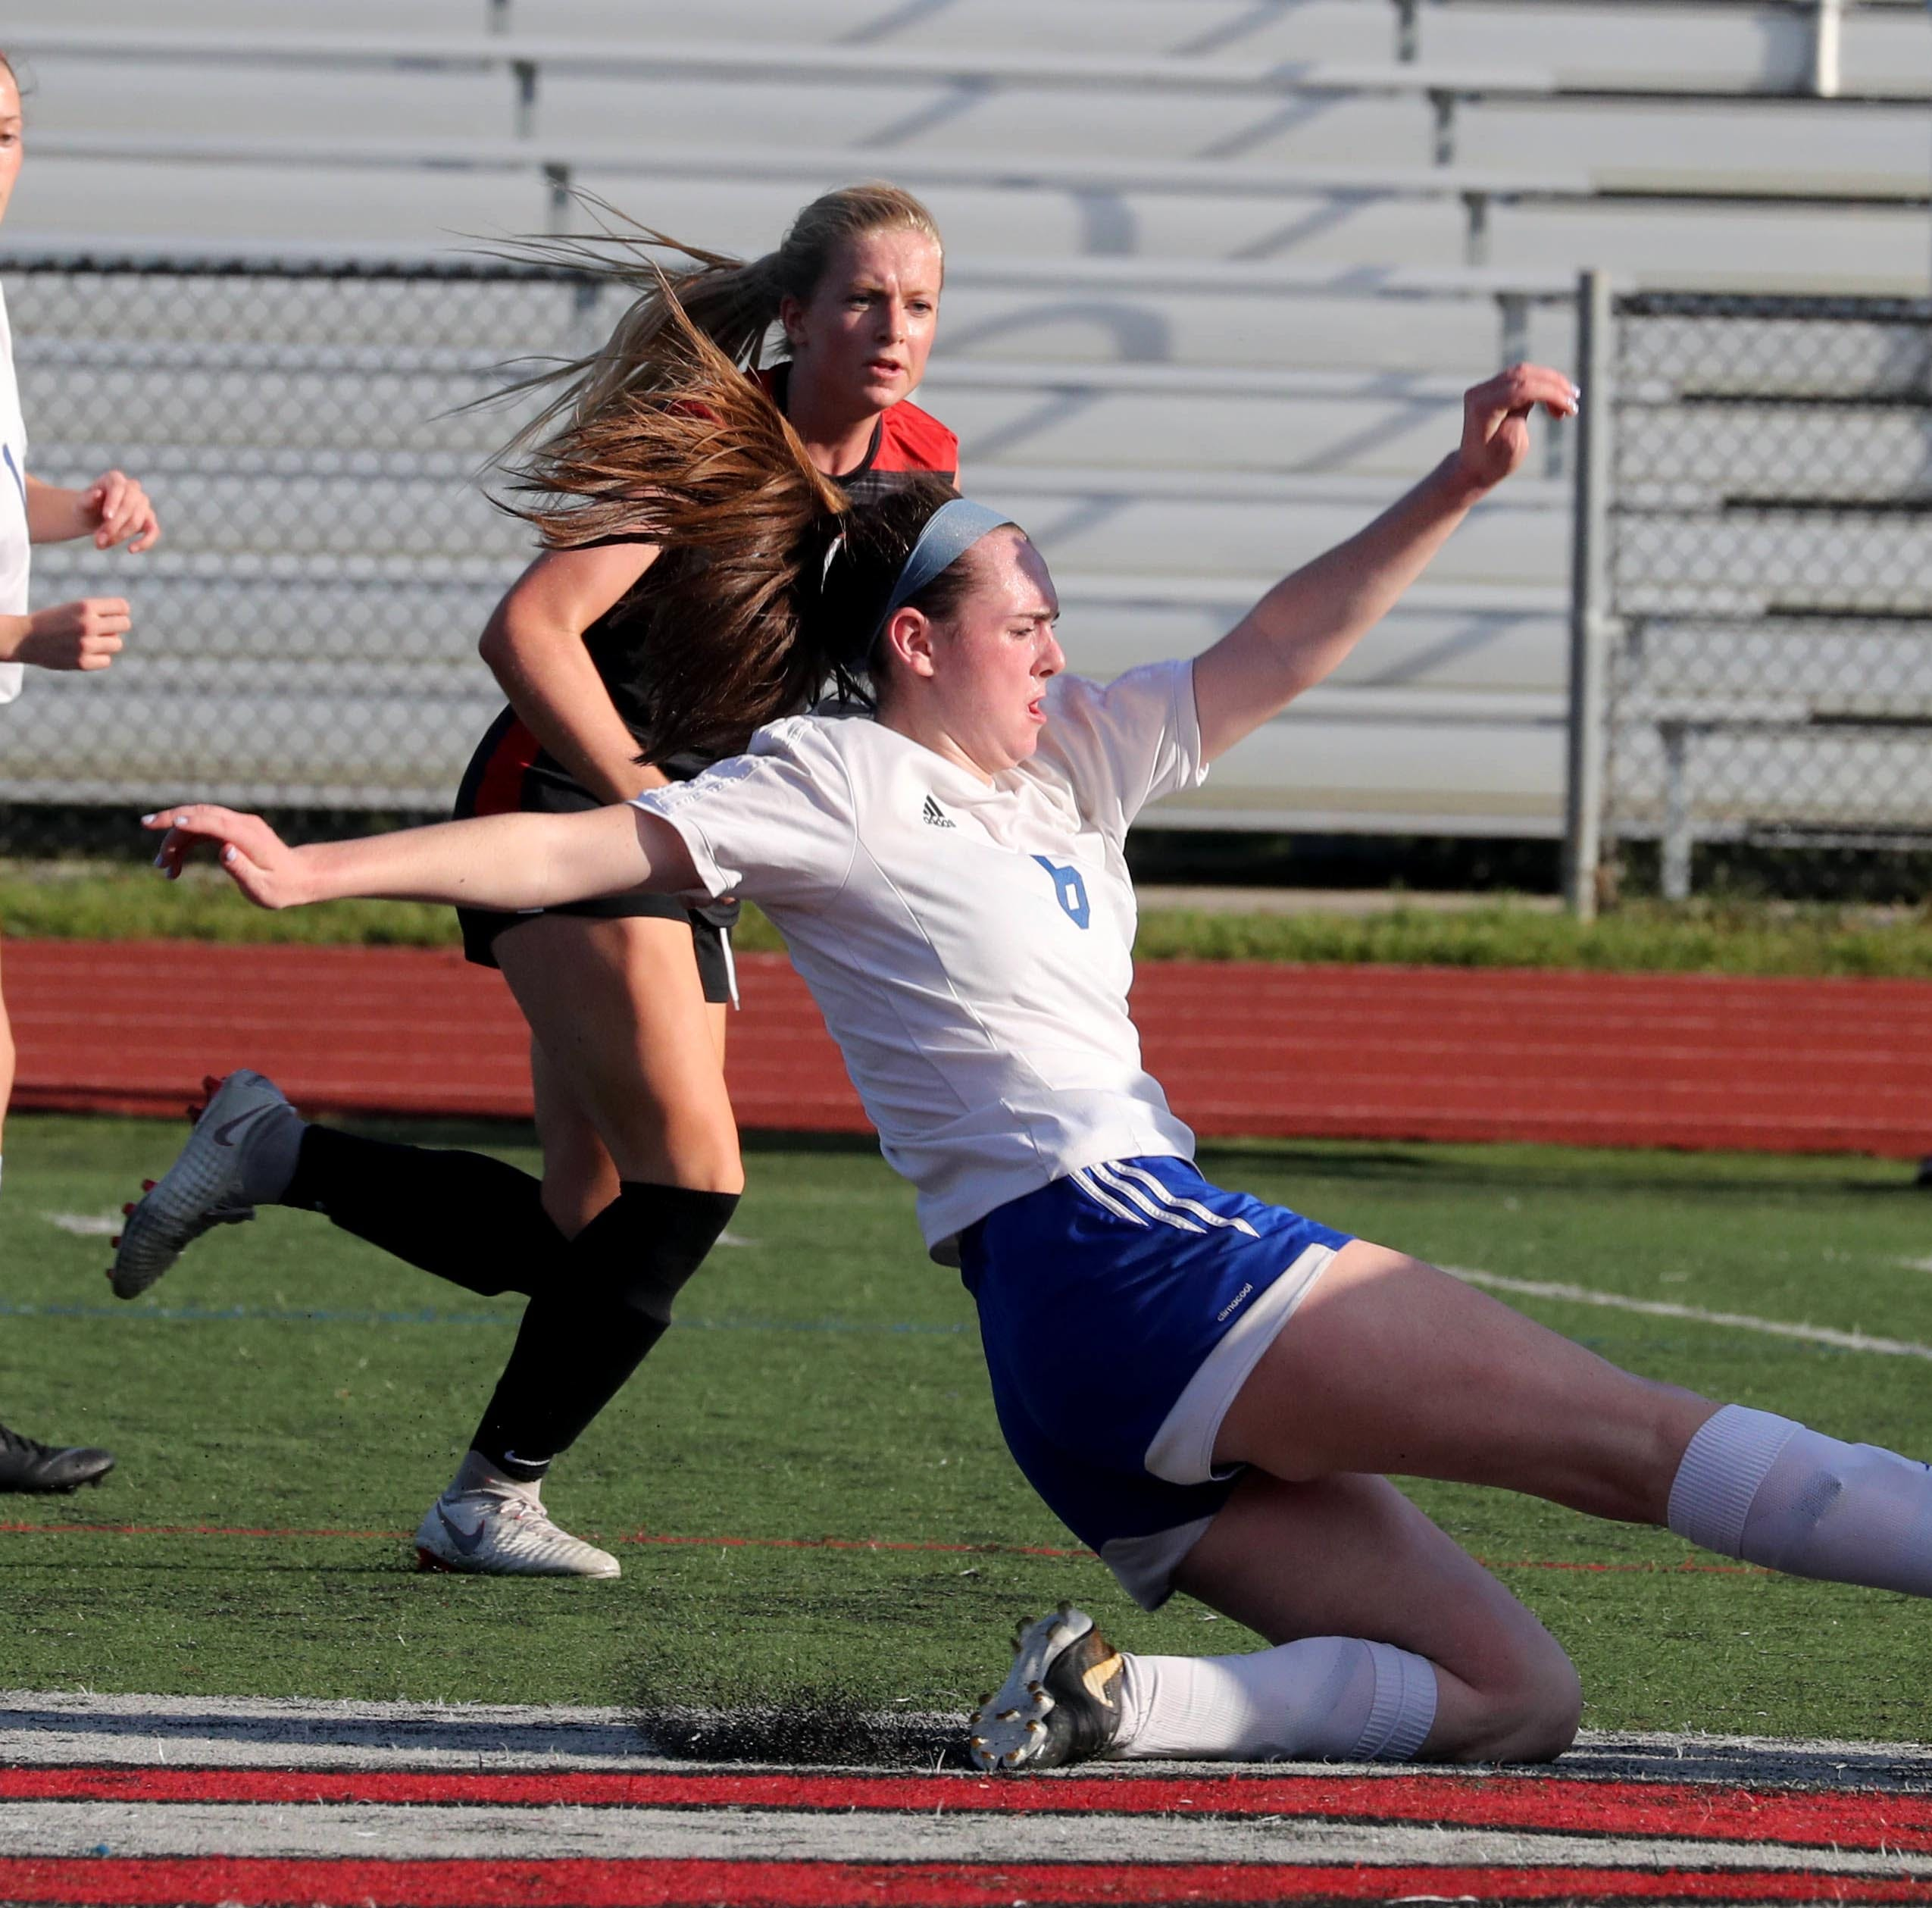 Girls soccer: Defenders are unsung heroes of the game